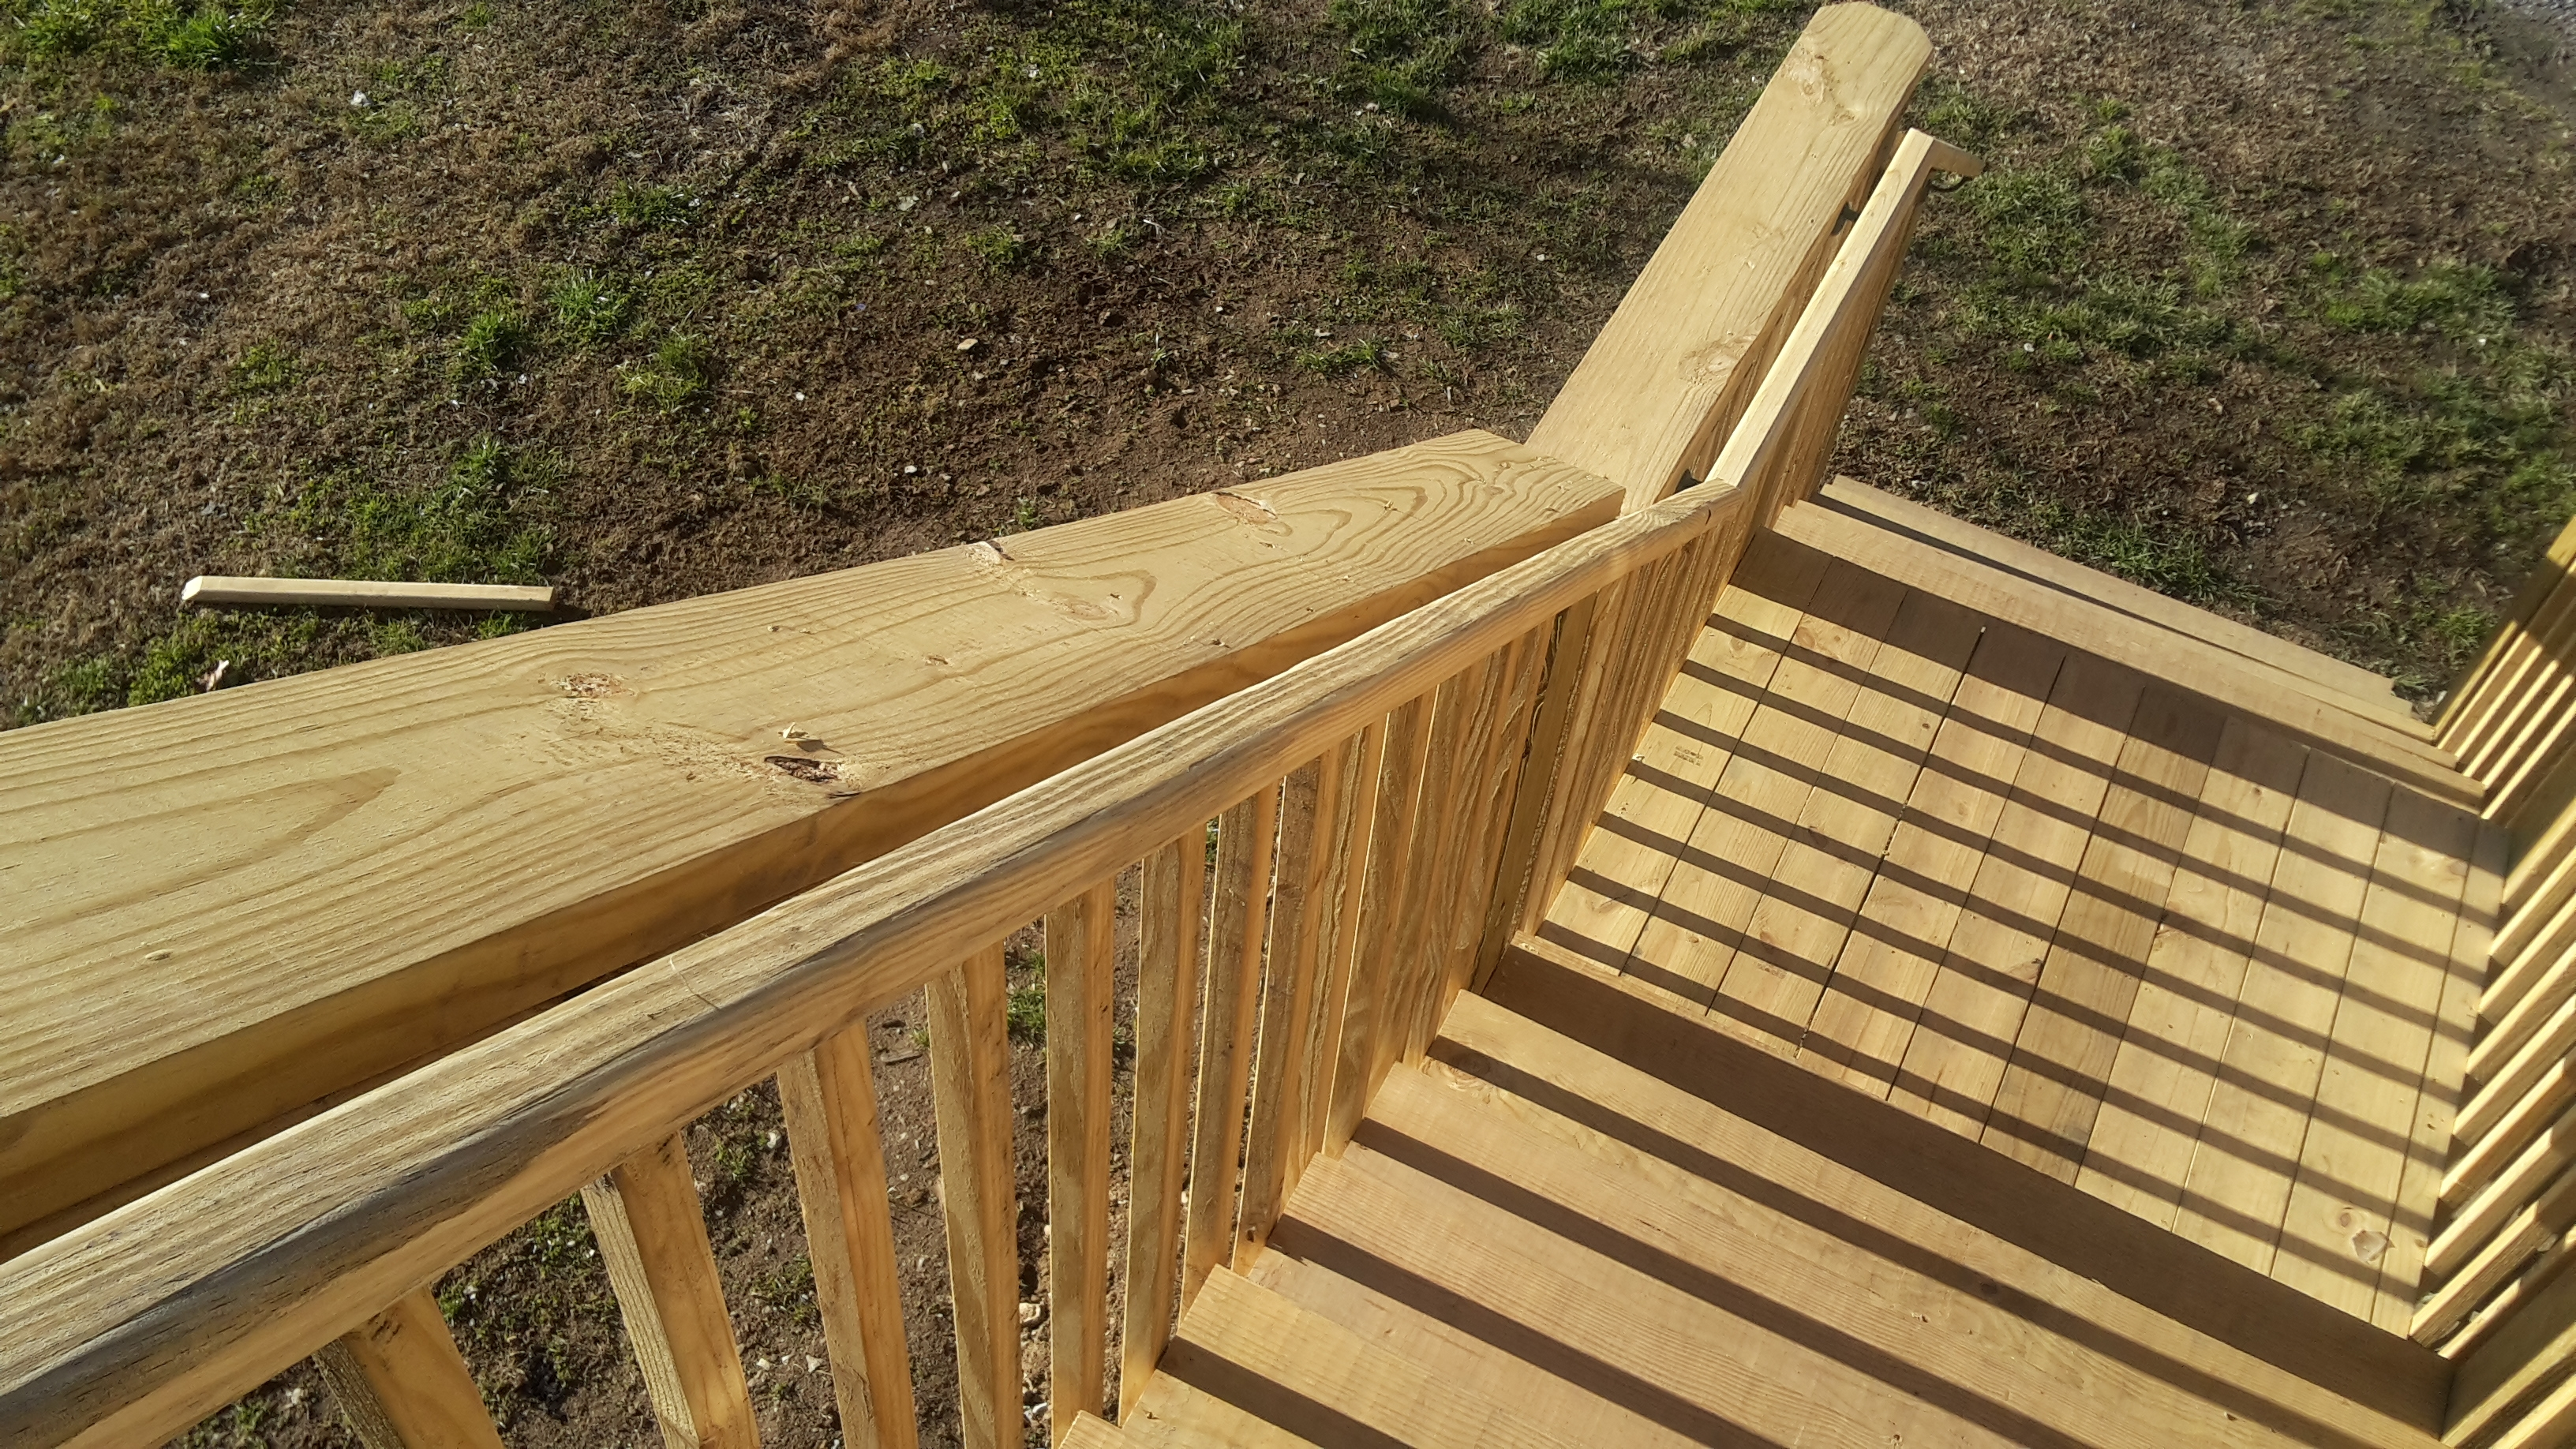 Deck Stair Code Bc Codes Deck Codes In Areas Across The Country   Graspable Handrail Home Depot   Fence   Deck Railing   Ada Compliant   Stair Handrail   Stair Rail